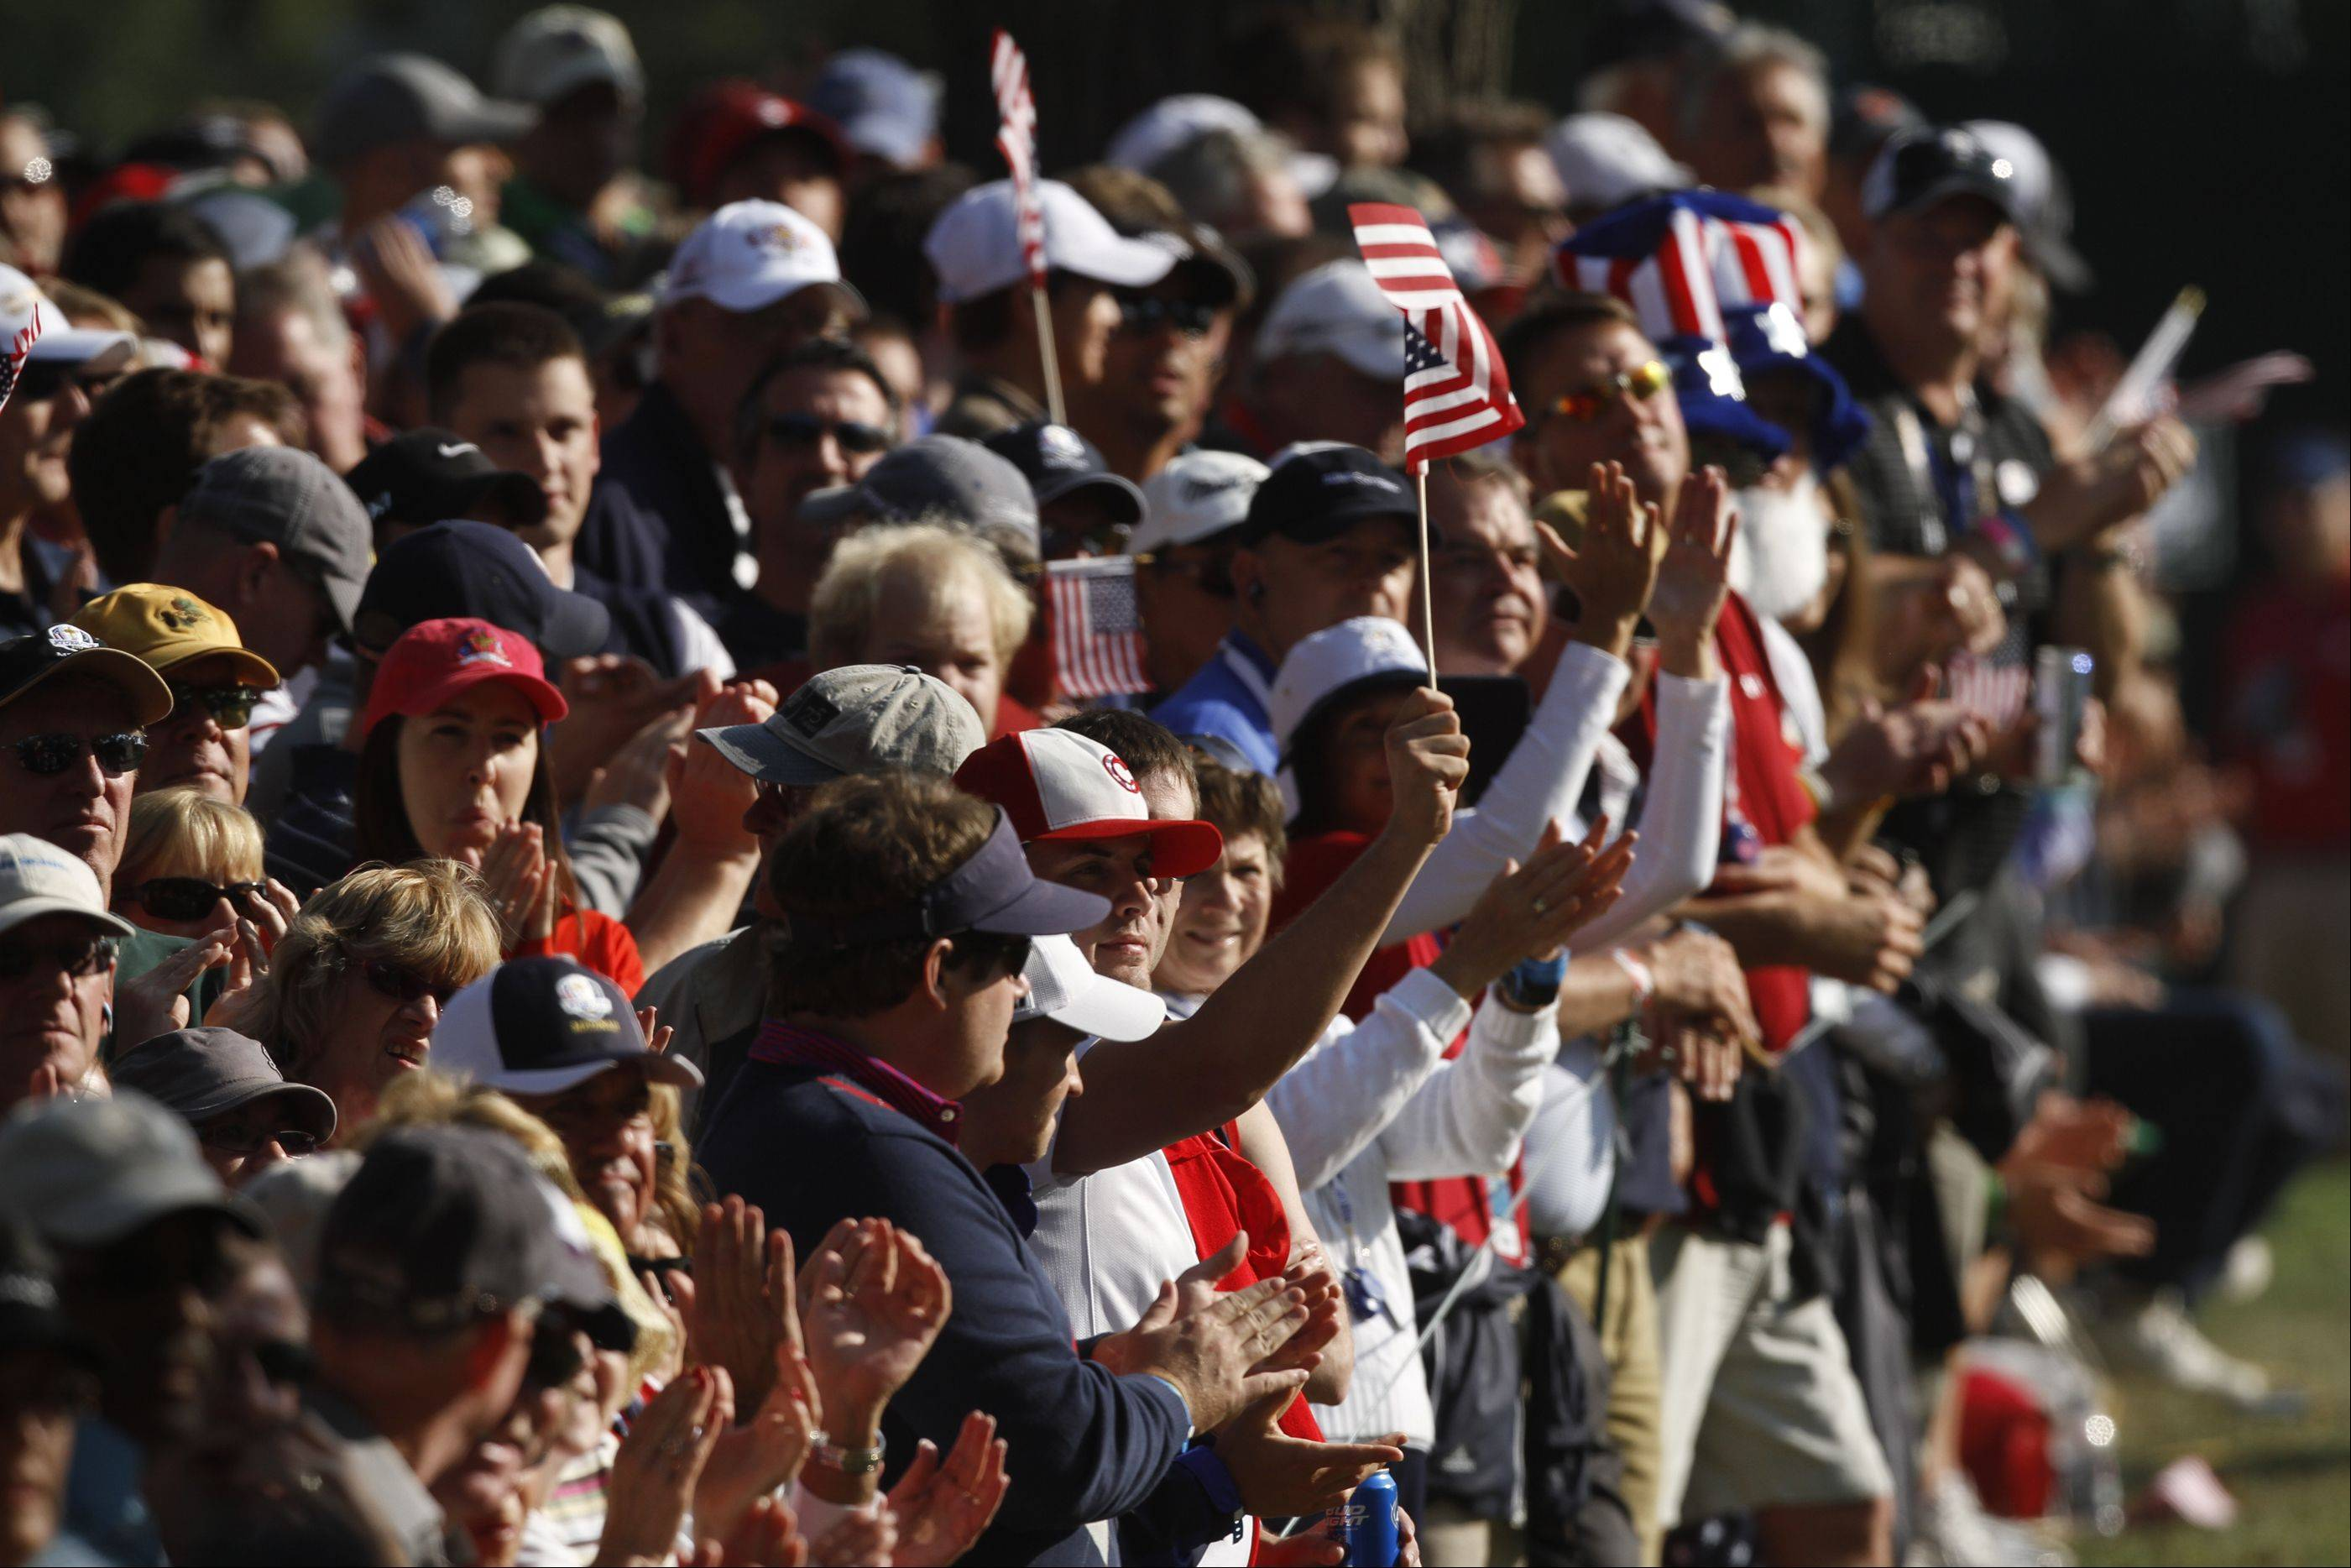 Fans cheer on Team USA on the 16th hole during the afternoon round play of the 2012 Ryder Cup at Medinah Country Club.